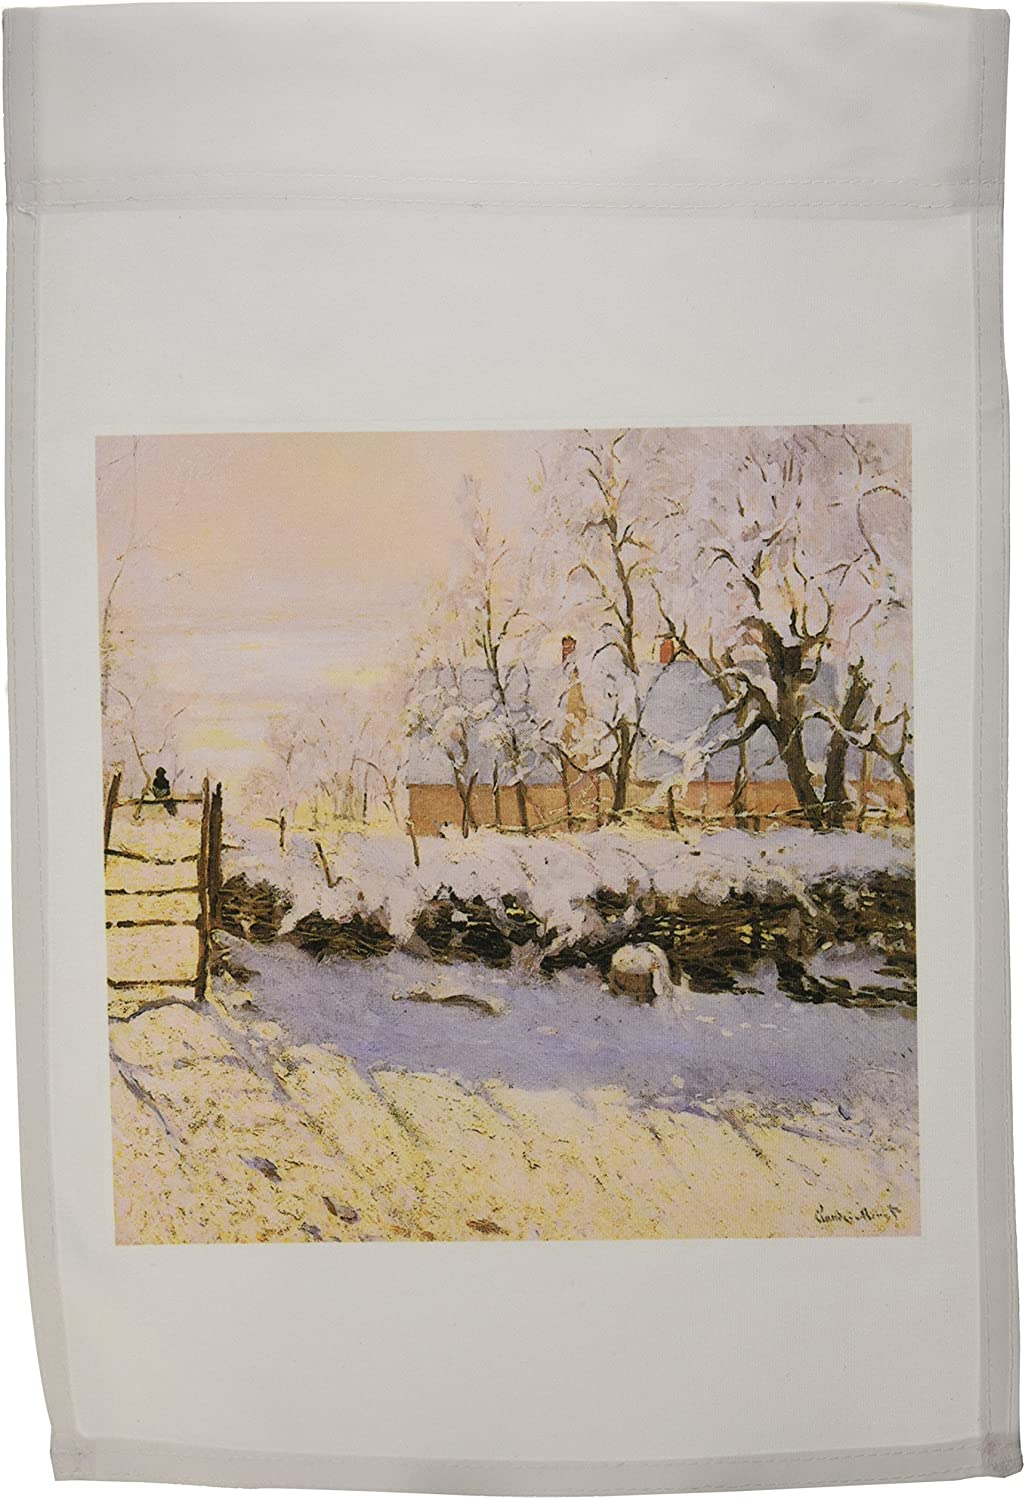 3dRose fl_126553_1 The Magpie, Snow Effect, Outskirts of Honfleur by Claude Monet, 1869 Garden Flag, 12 by 18-Inch